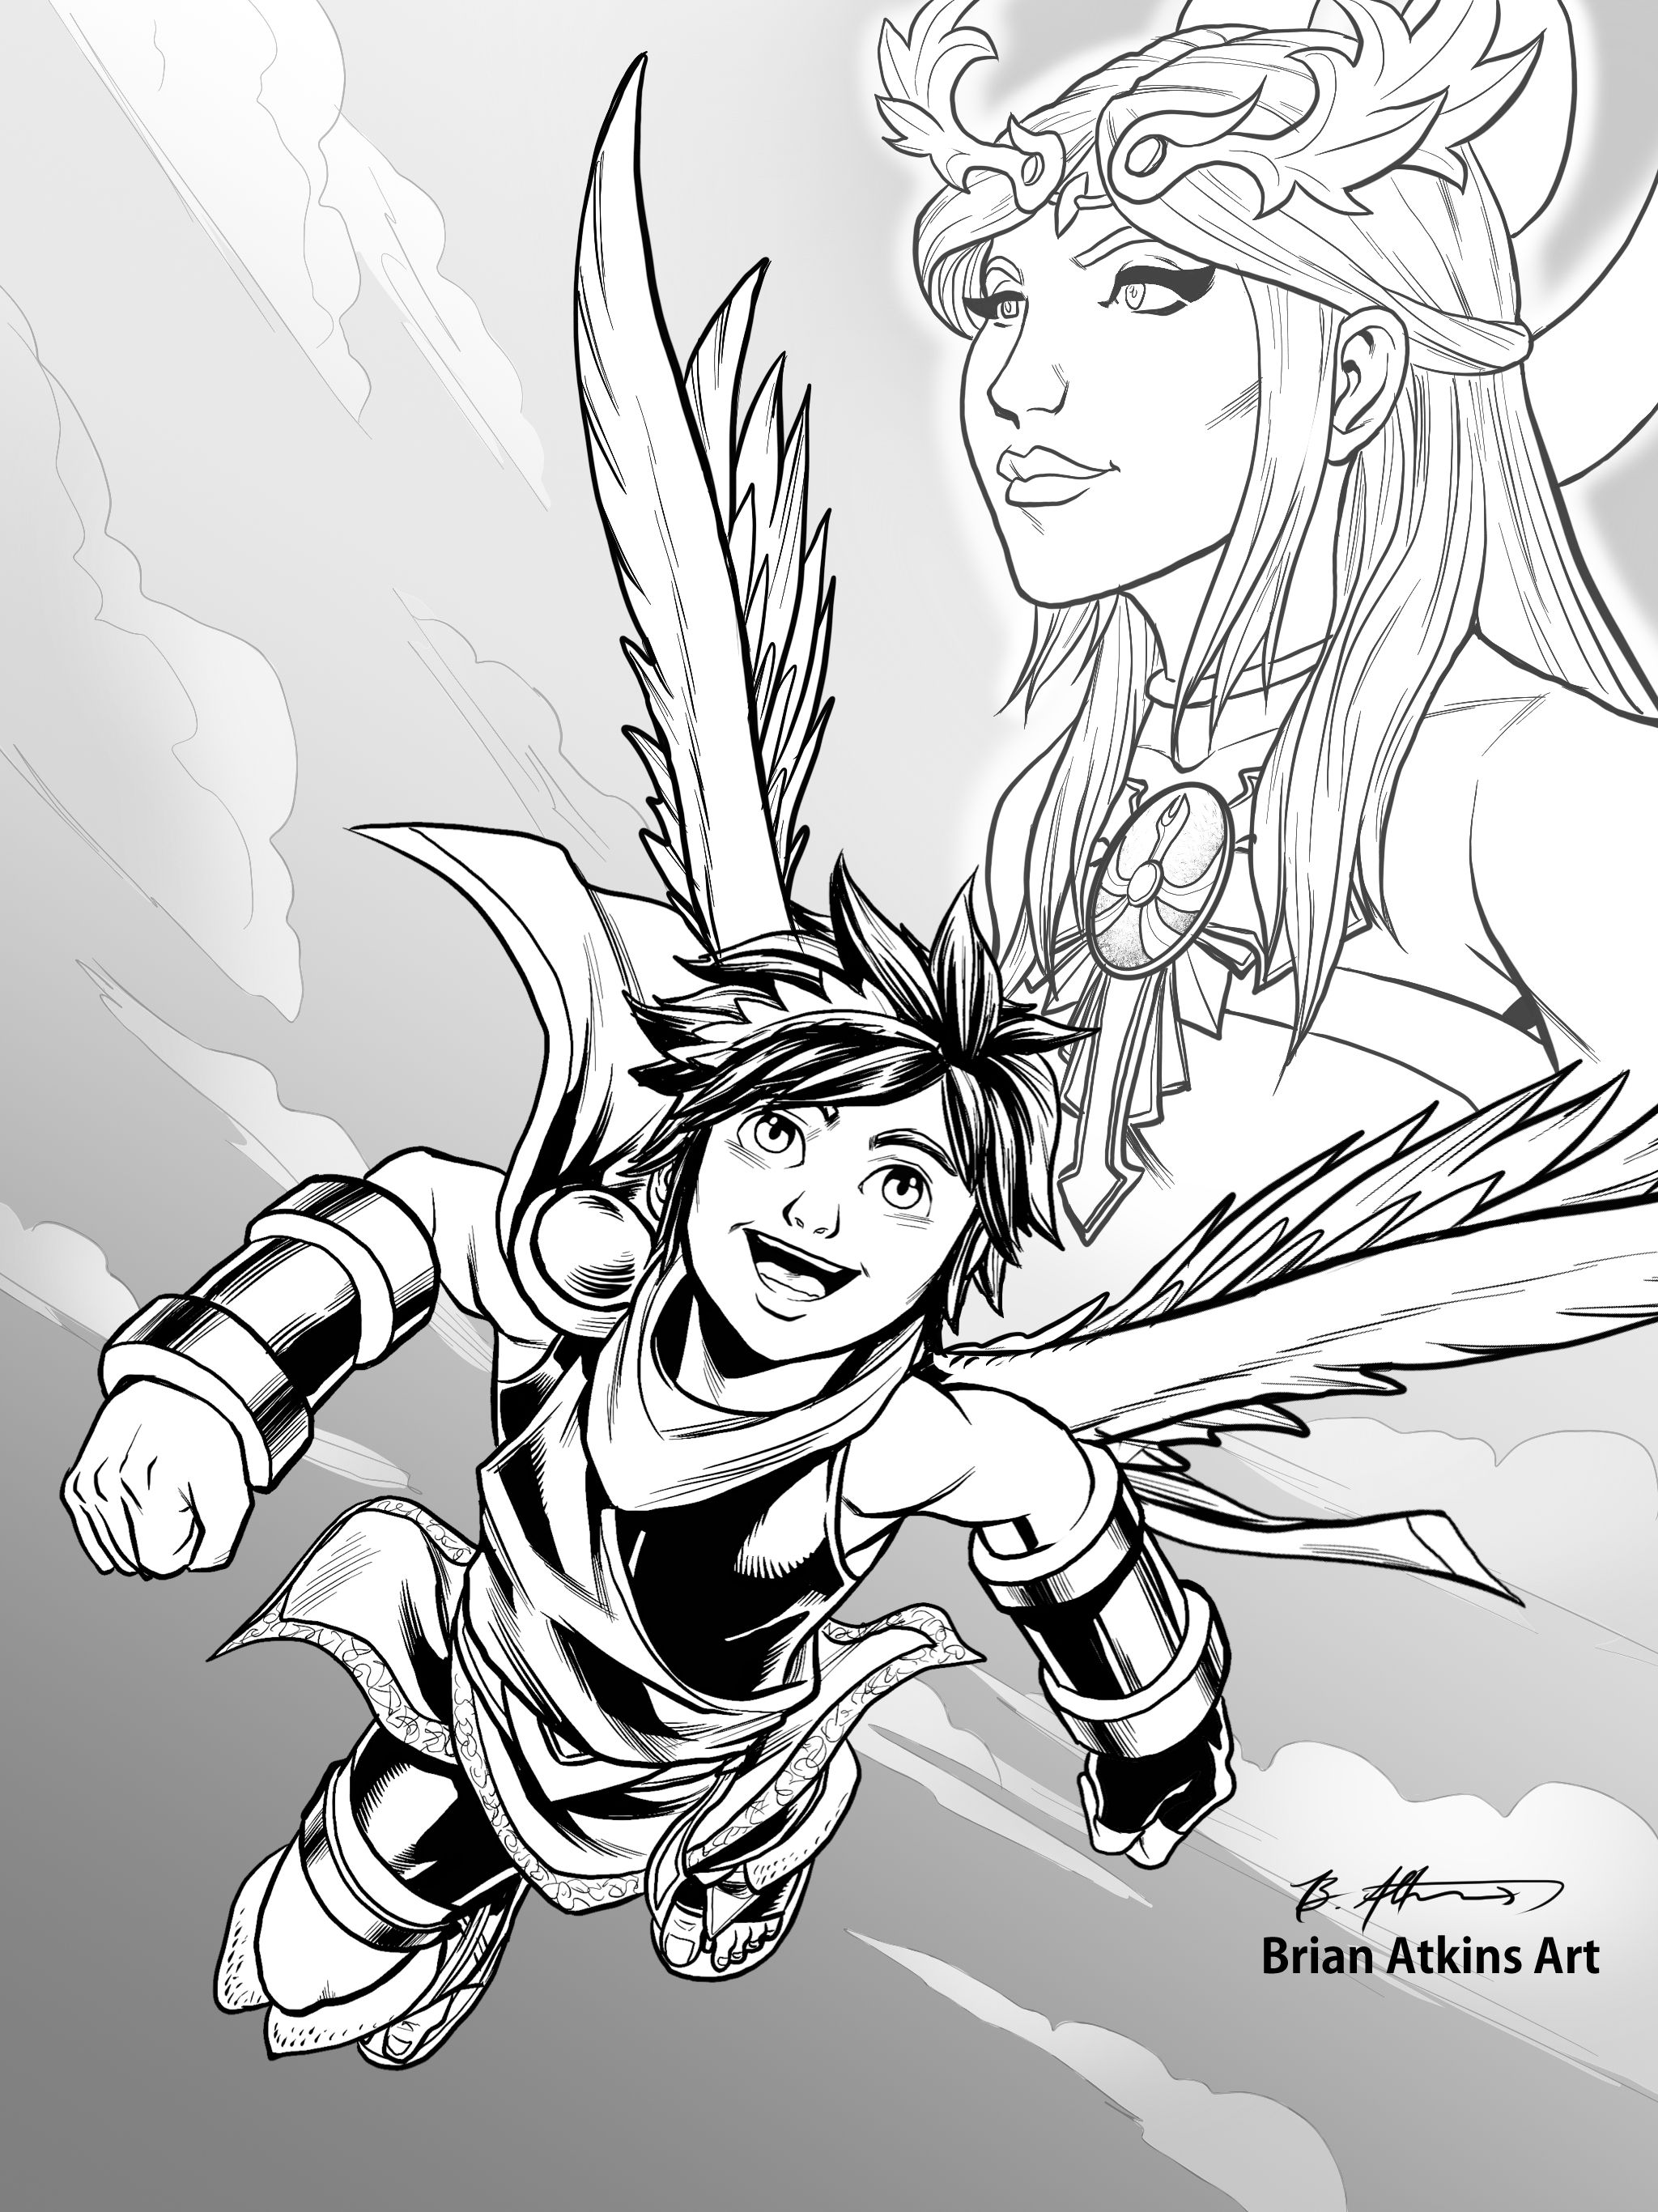 Videogame Themed Inktober Kid Icarus Final W The Goddess Palutena I Finished This Today While Sitting With My Grandma Who Is Dying